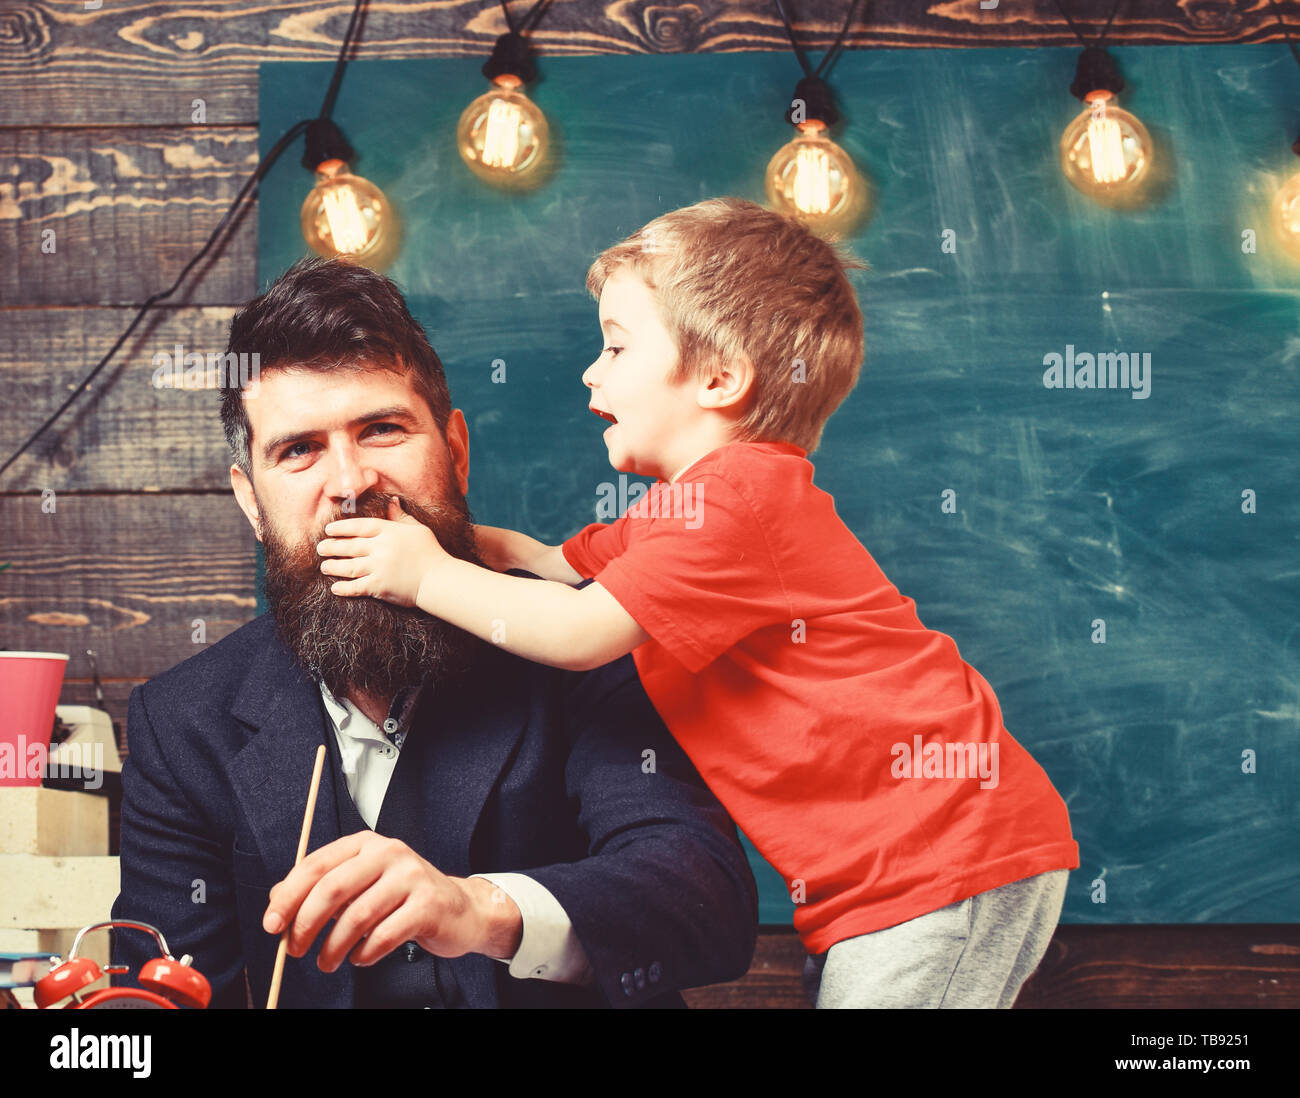 Childhood concept. Father painting while son is distracting him. Little kid holding his hand over daddy s mouth. Stock Photo